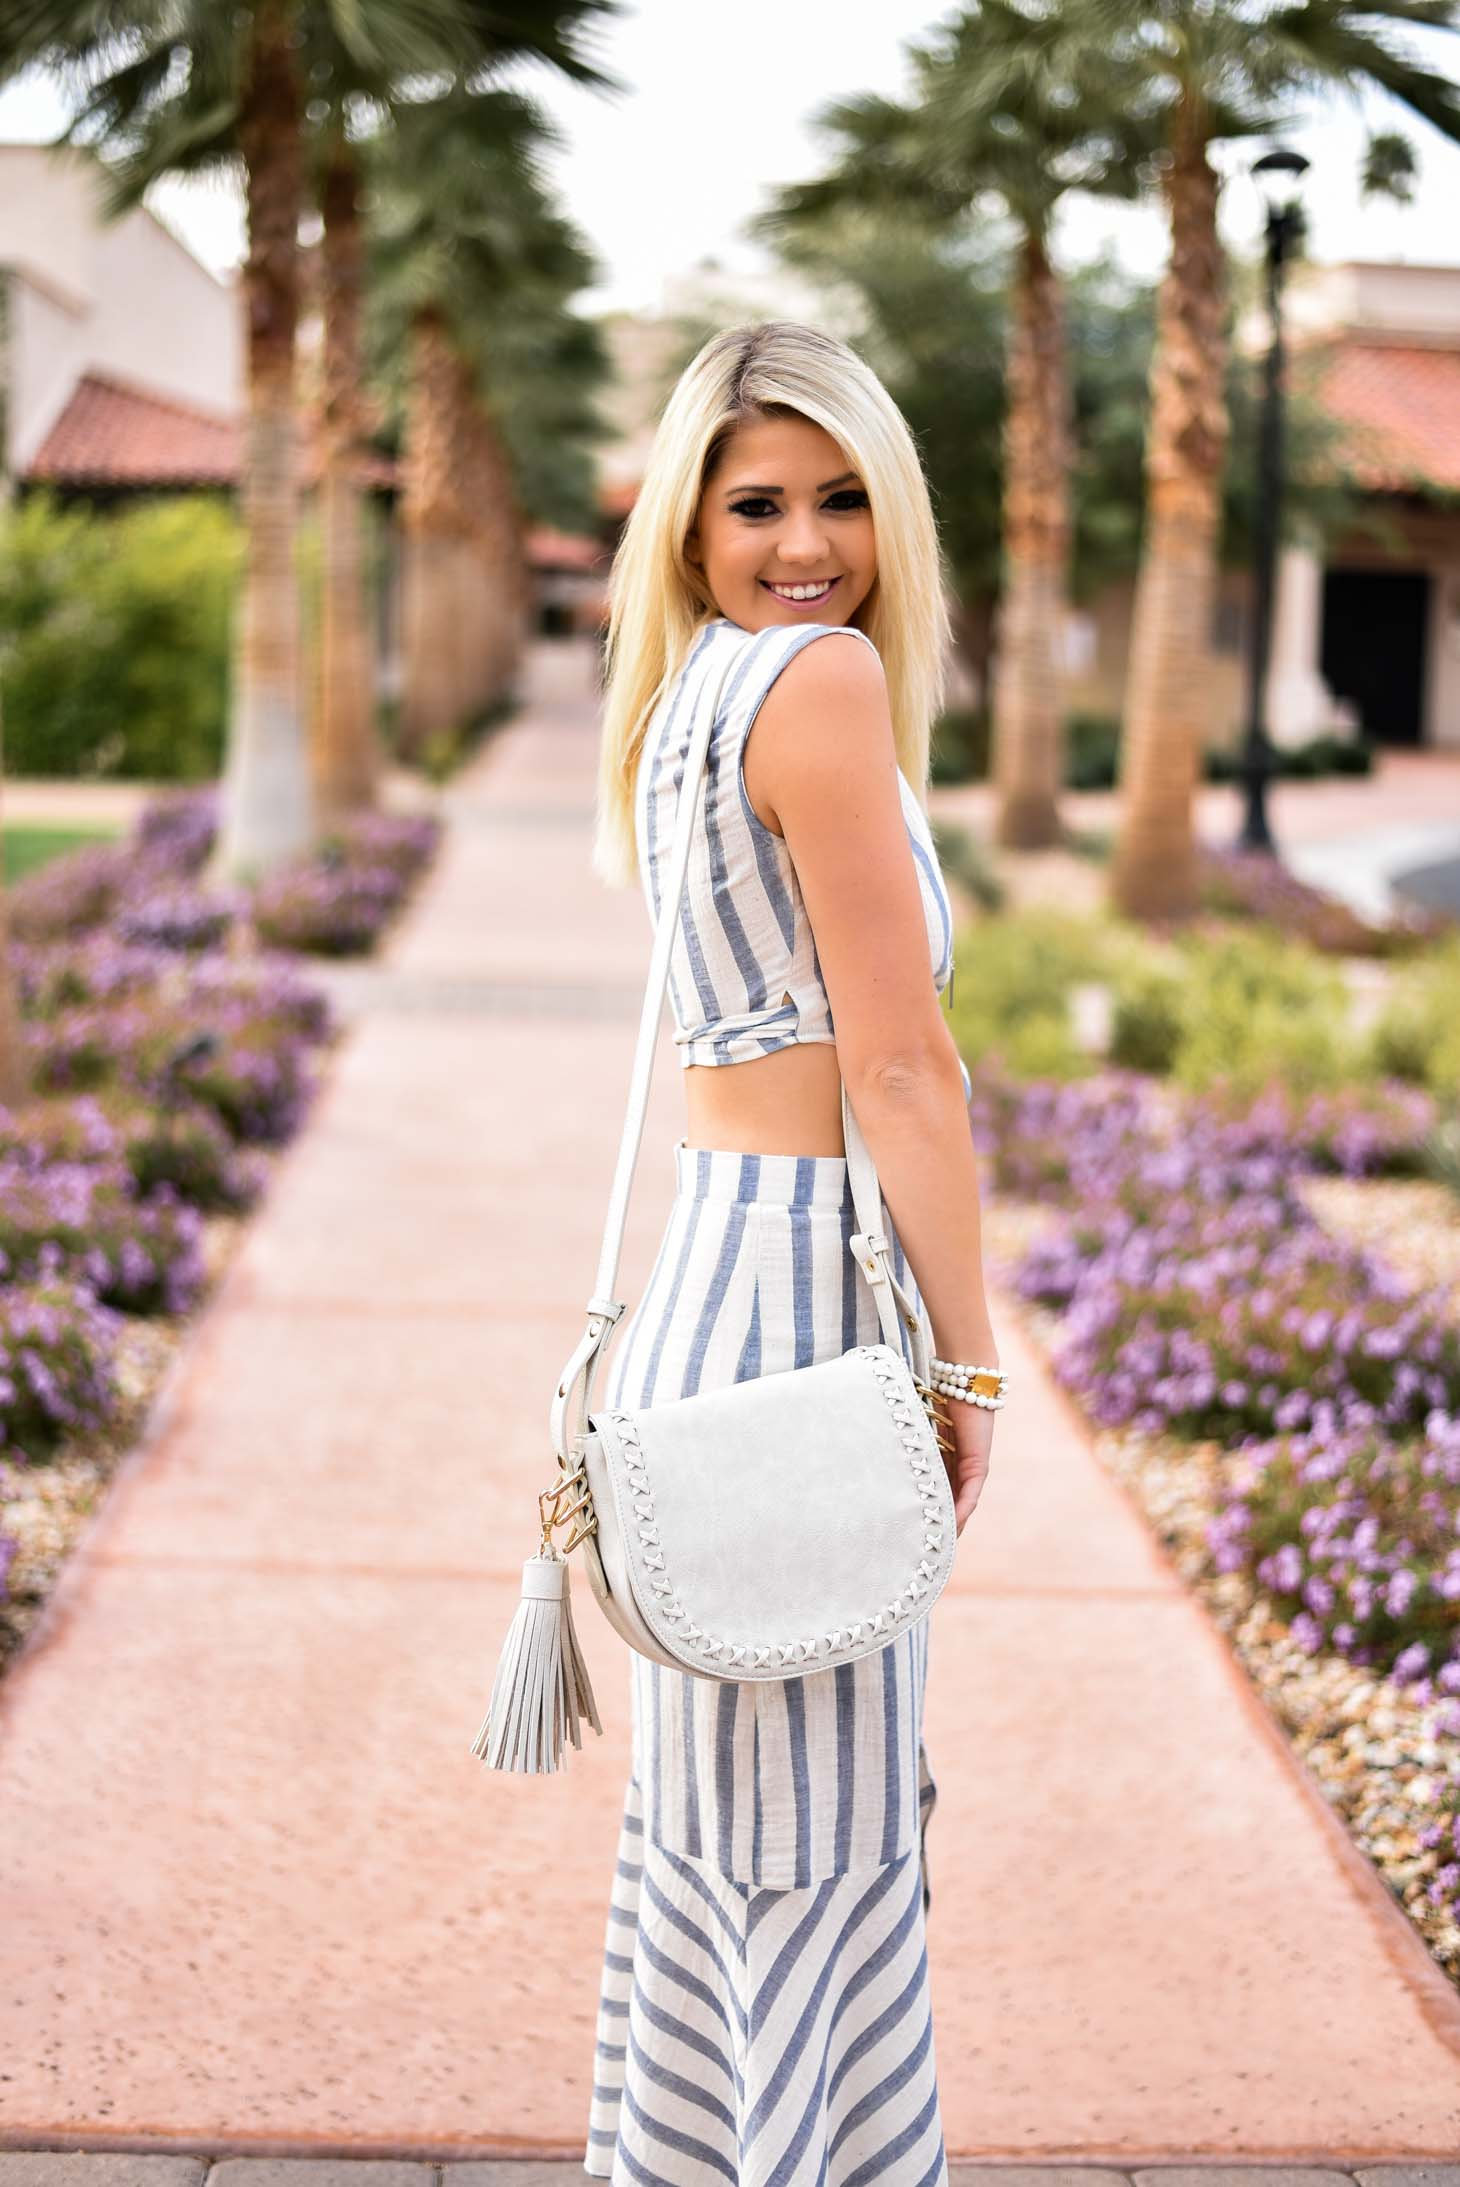 Erin Elizabeth of Wink and a Twirl in this 3 Jems Boutique Spring Striped Look